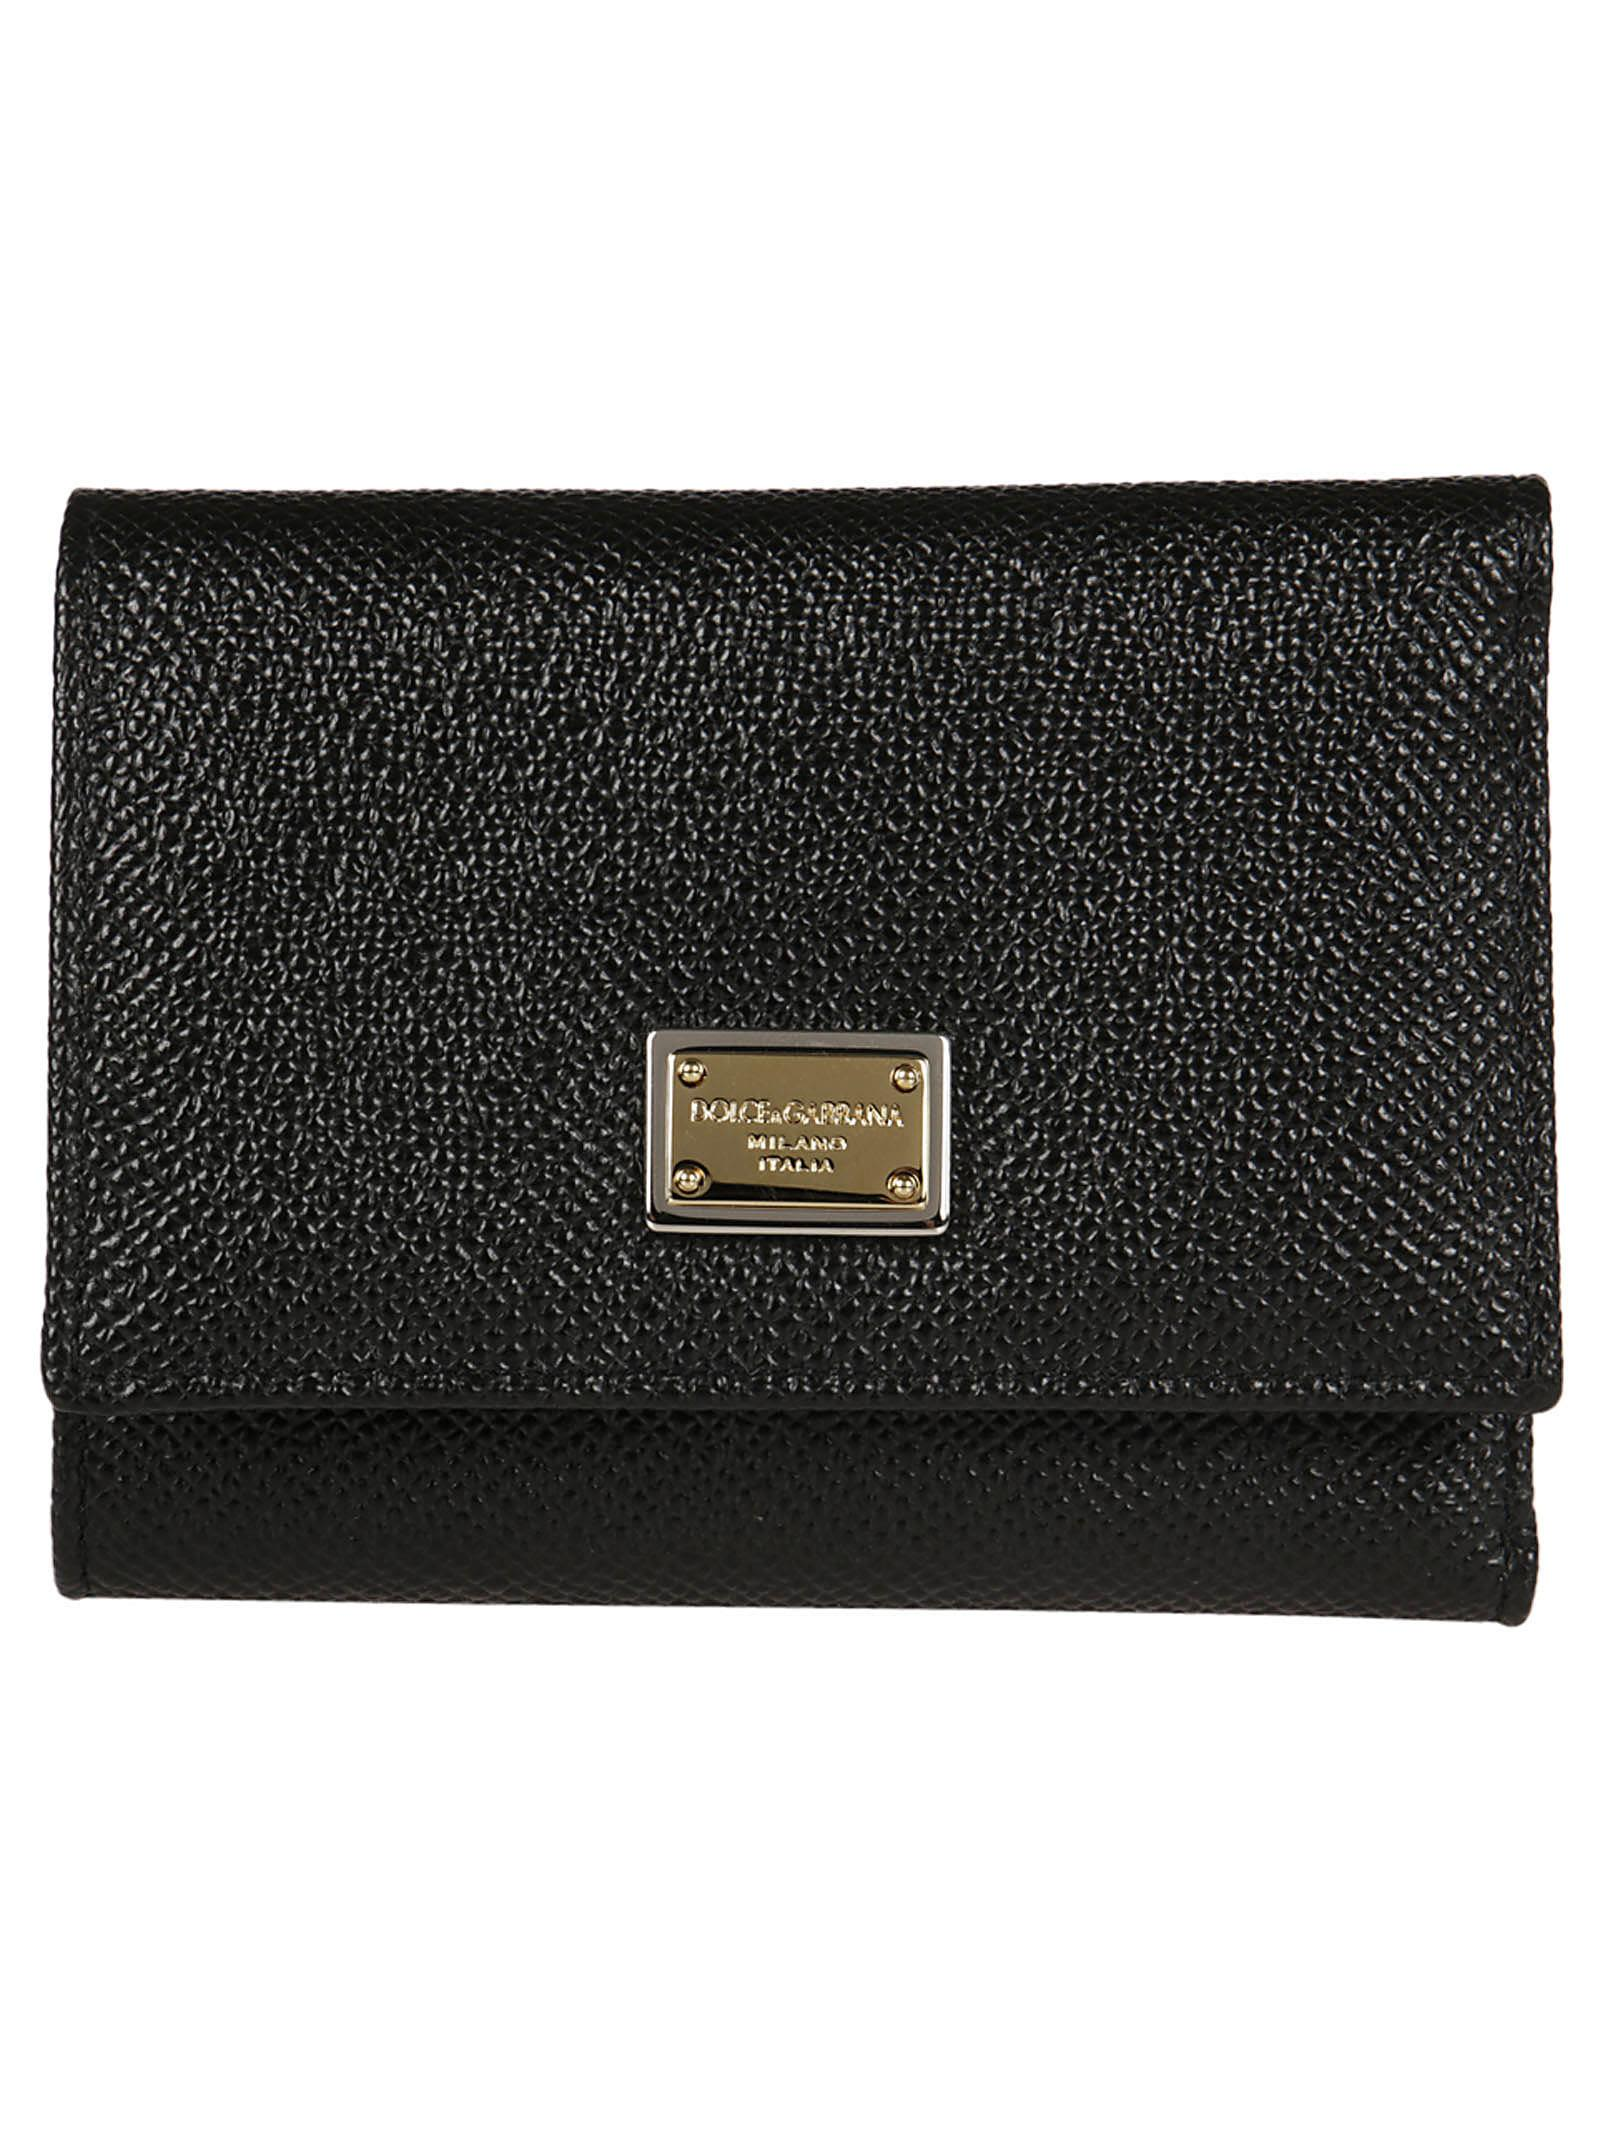 Dolce & Gabbana Dauphine Small Wallet